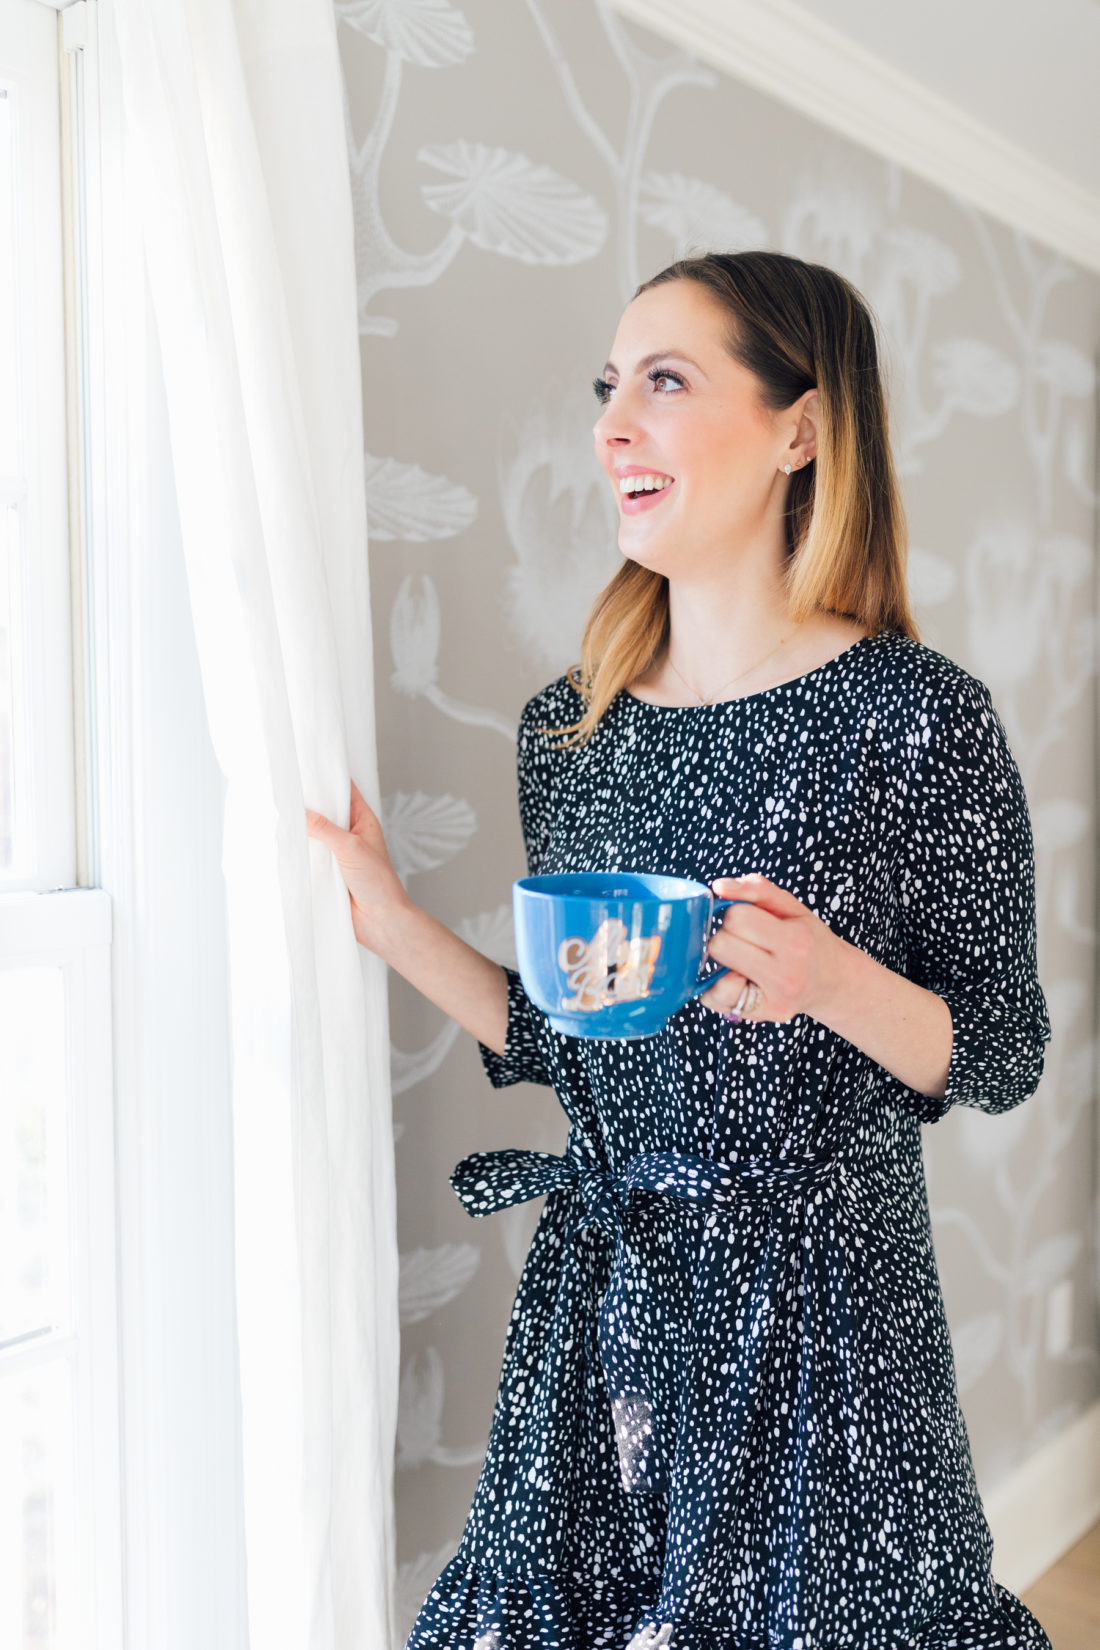 Eva Amurri Martino wears a ruffled printed dress and holds a blue mug while she peers out of the curtains in the bright and airy dining room in her Connecticut home